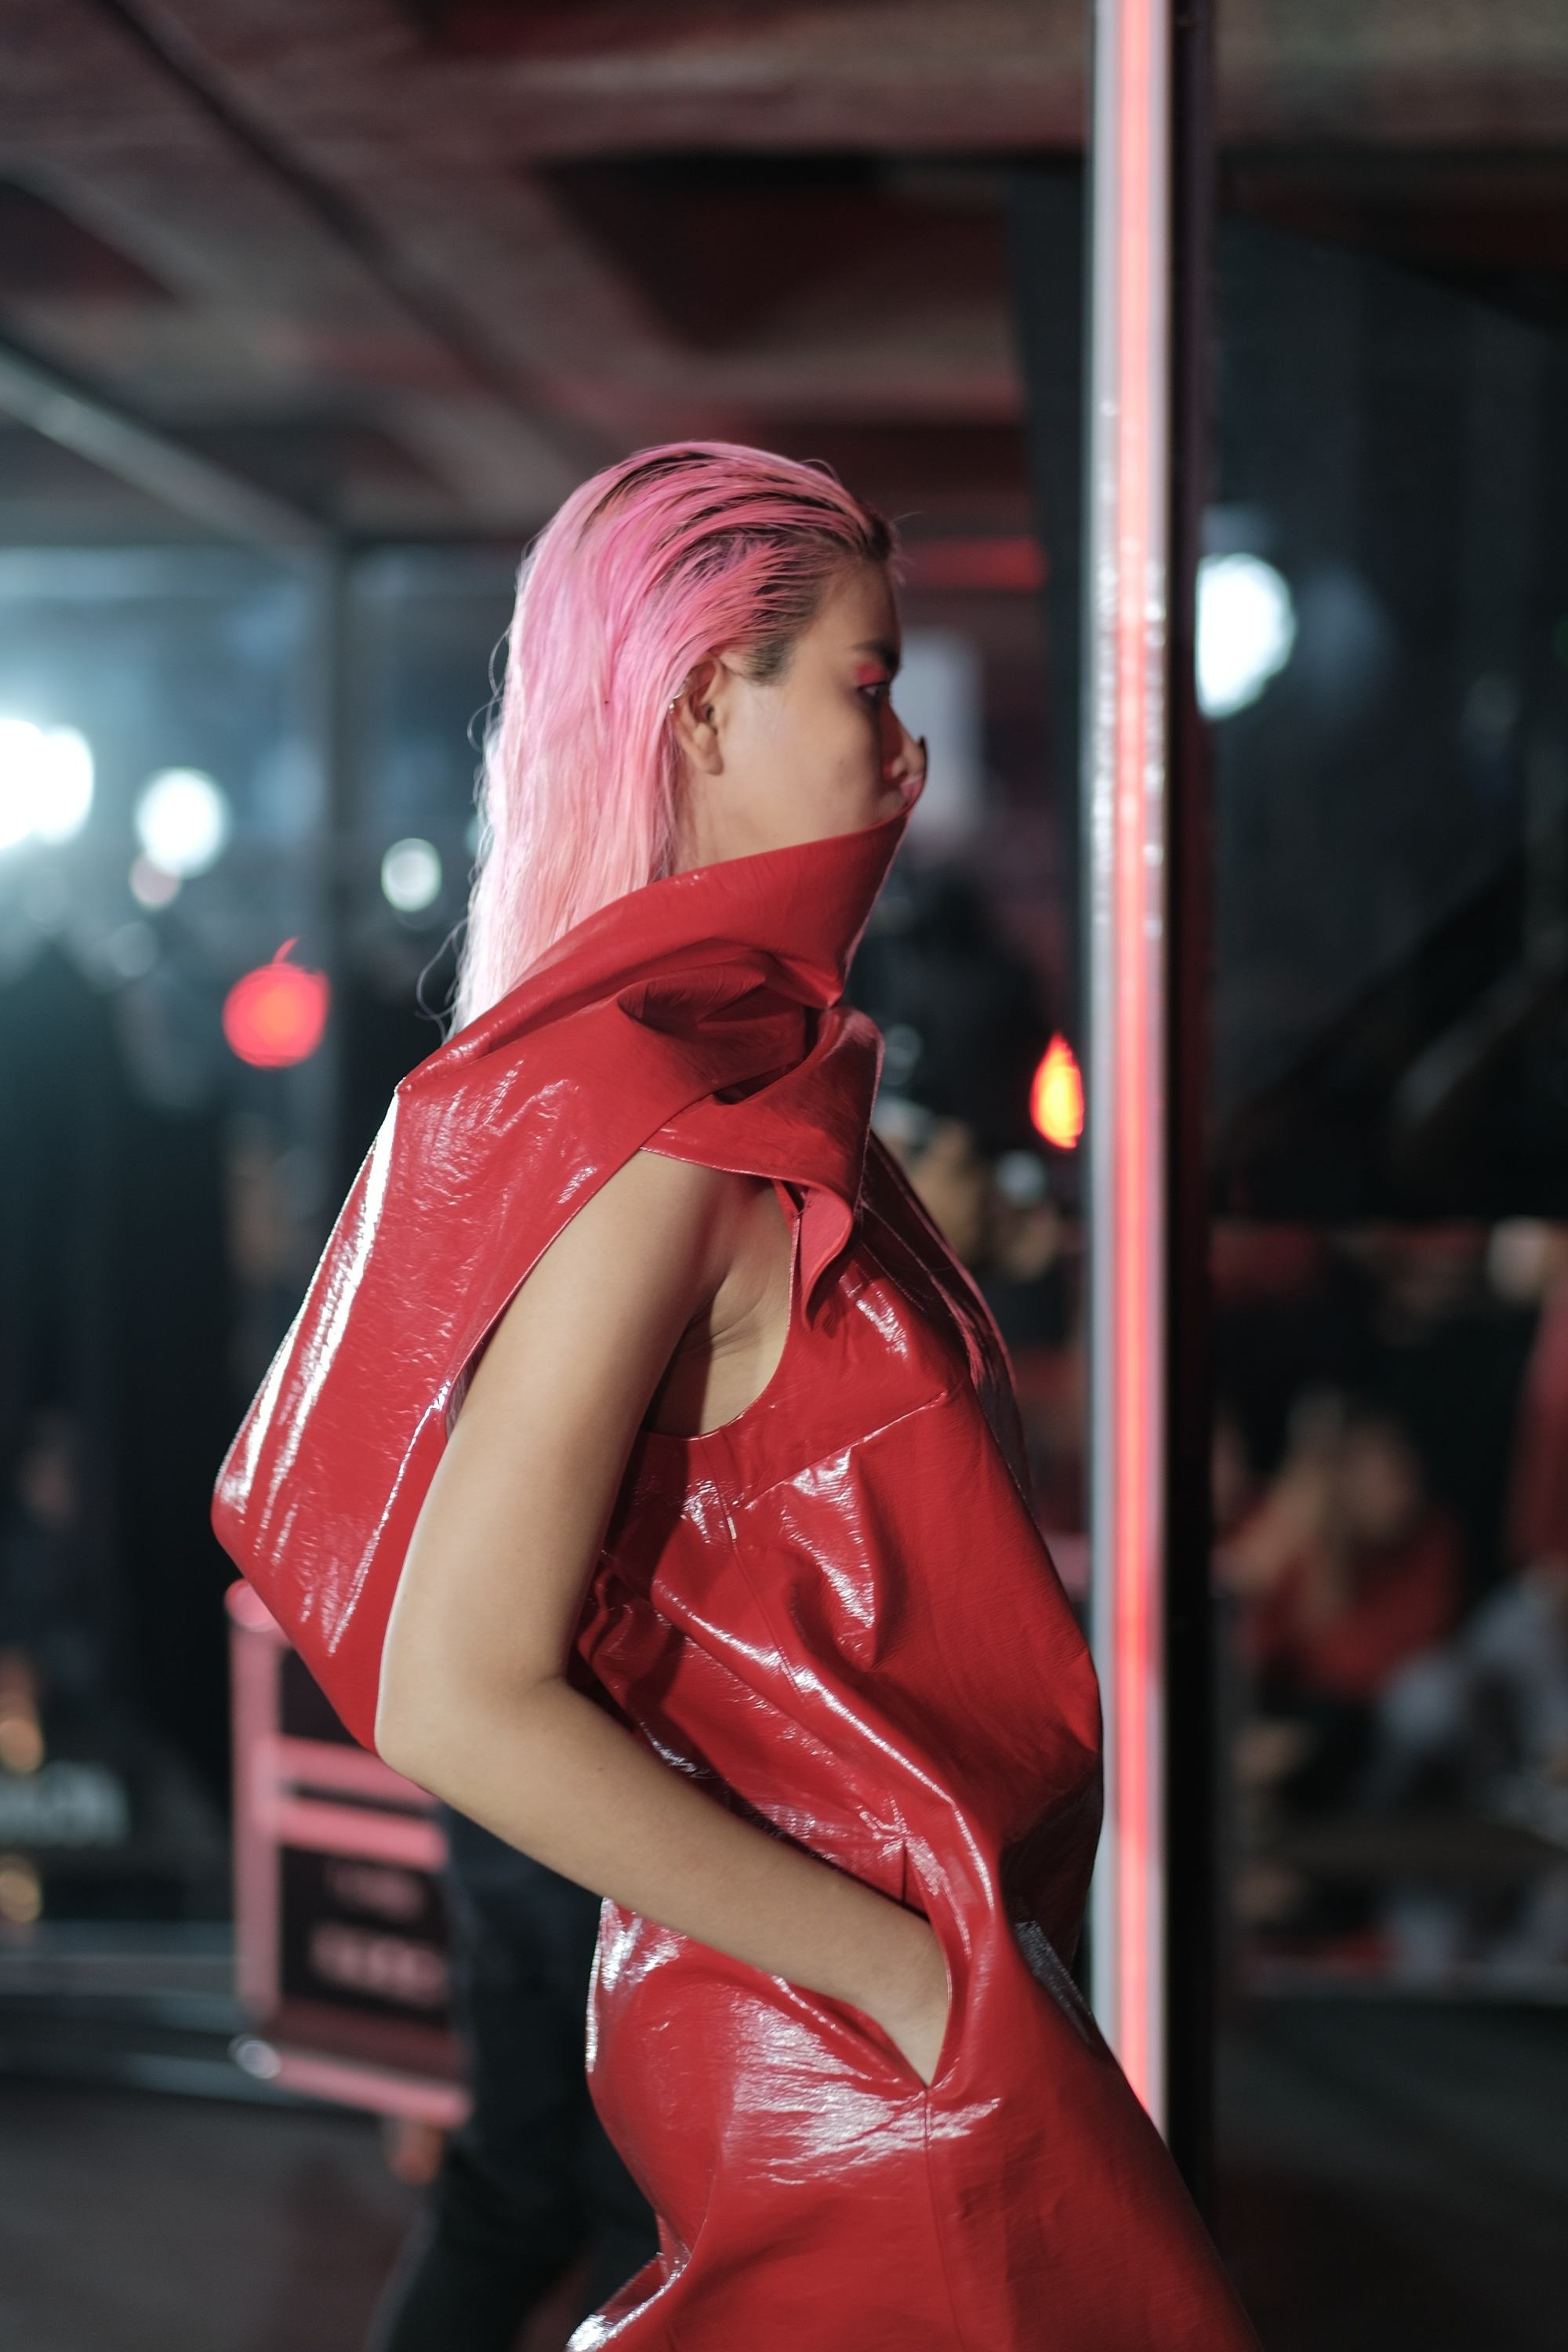 Model with pink hair in a red dress